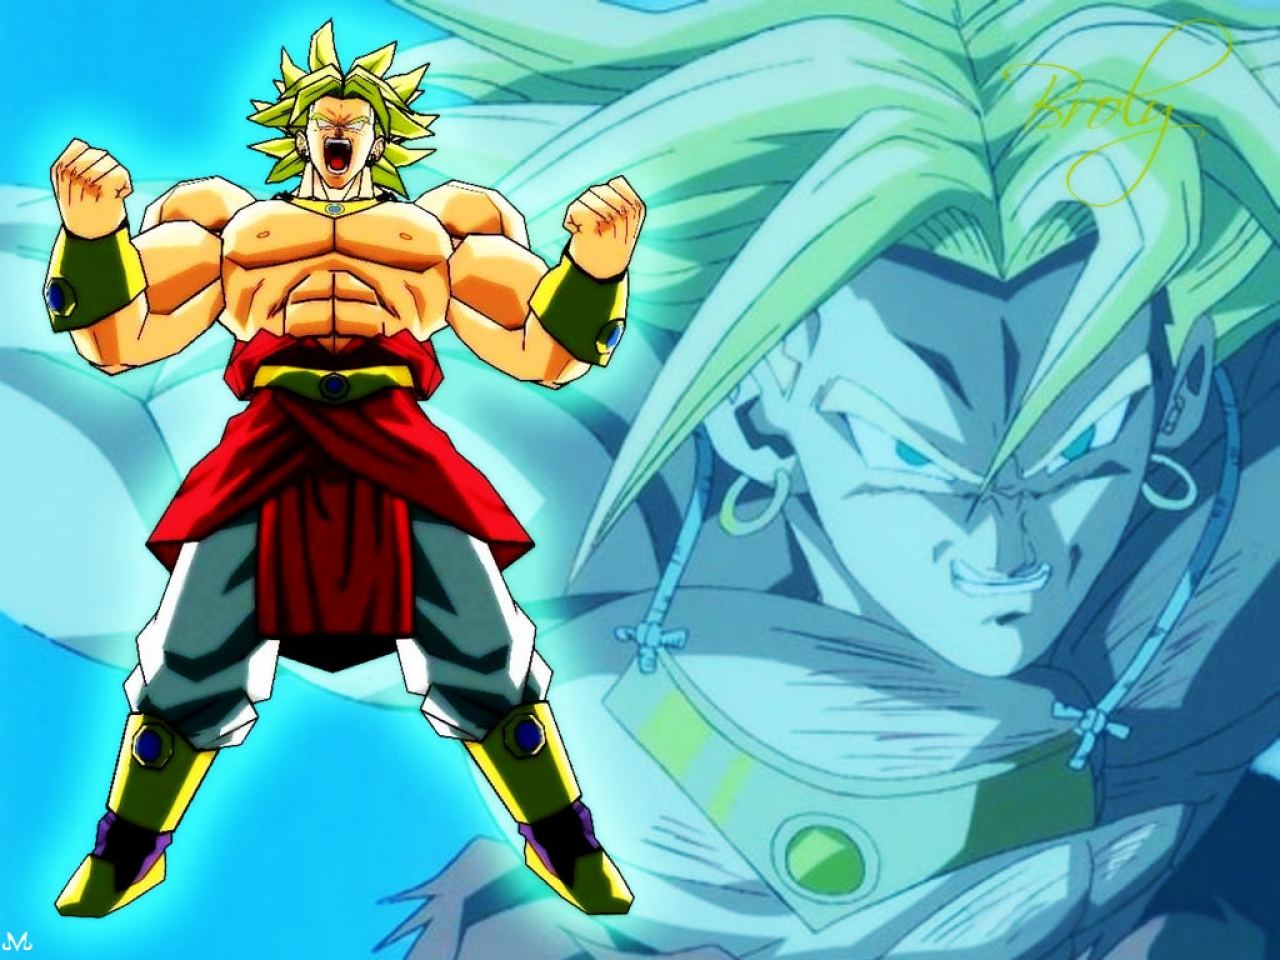 Dragon Ball Z Broly le super guerrier Télé 2 Semaines